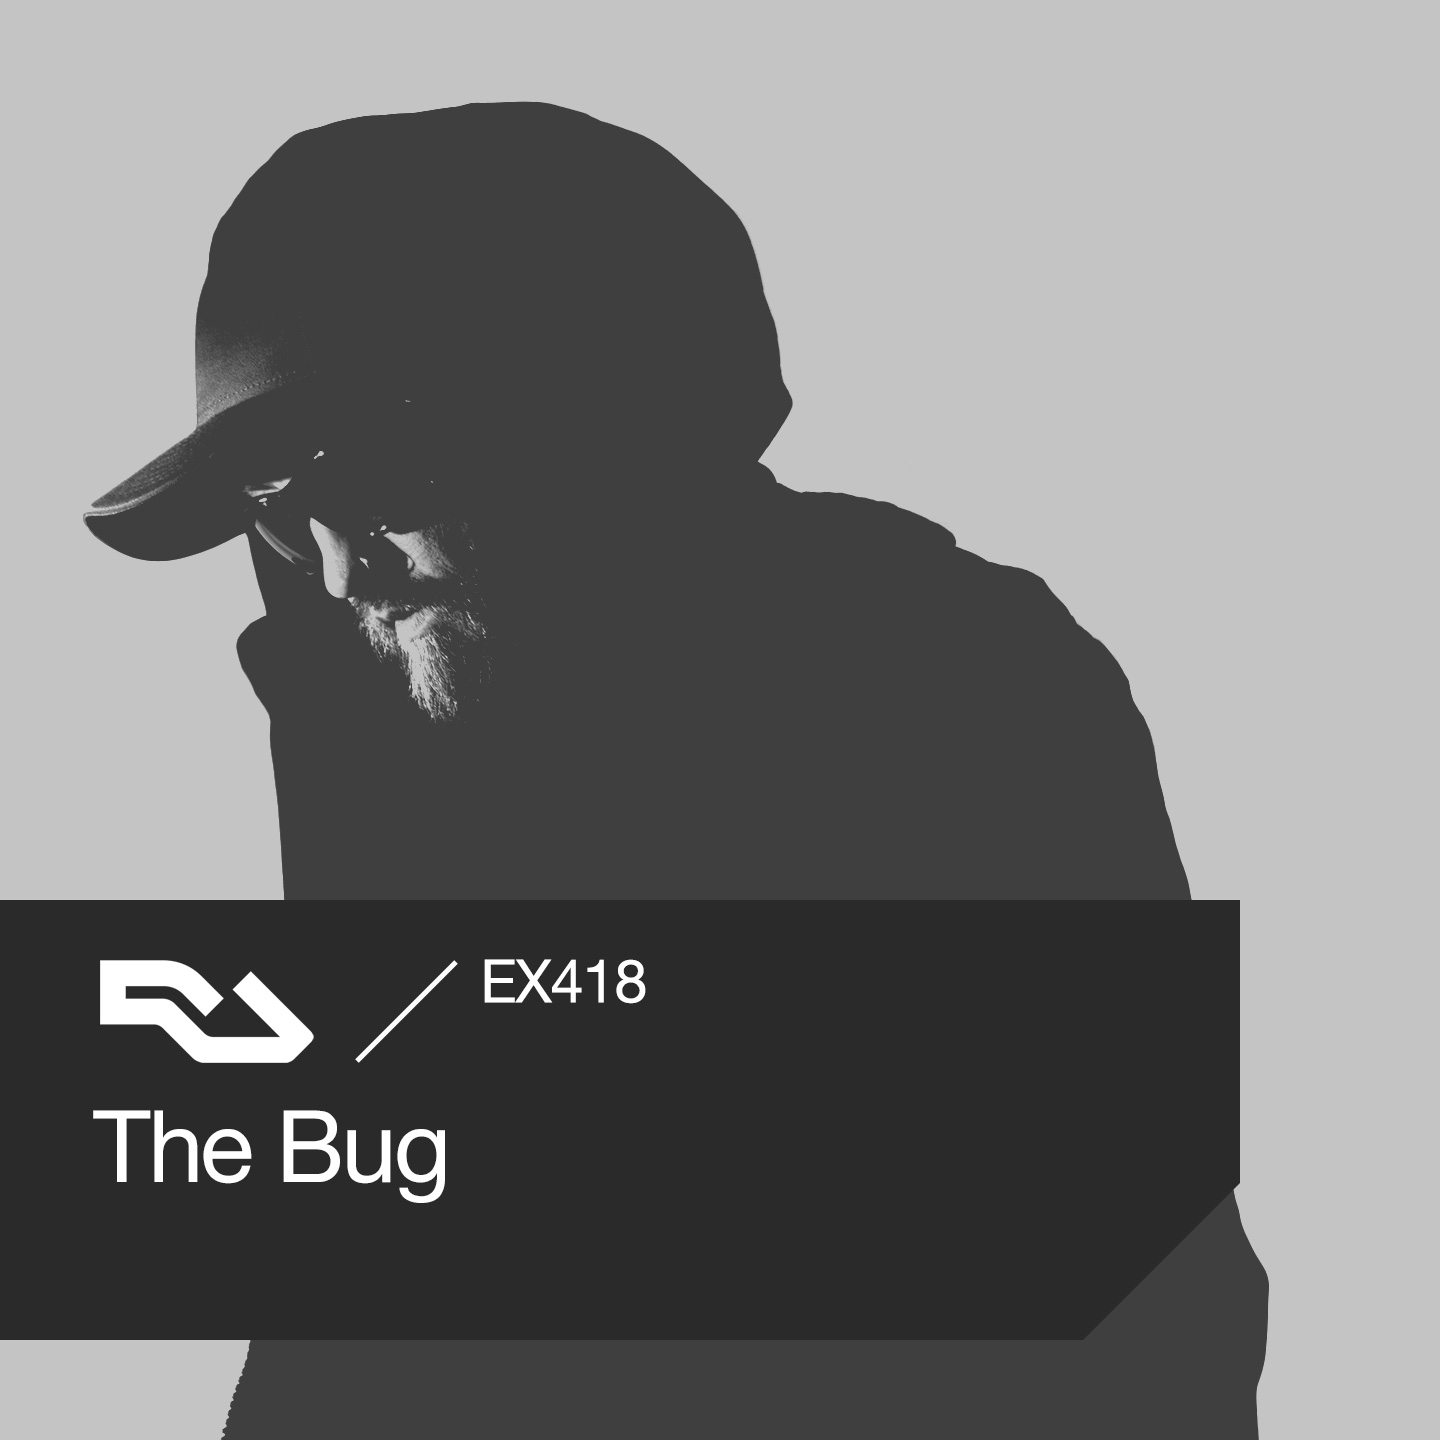 EX.418 The Bug